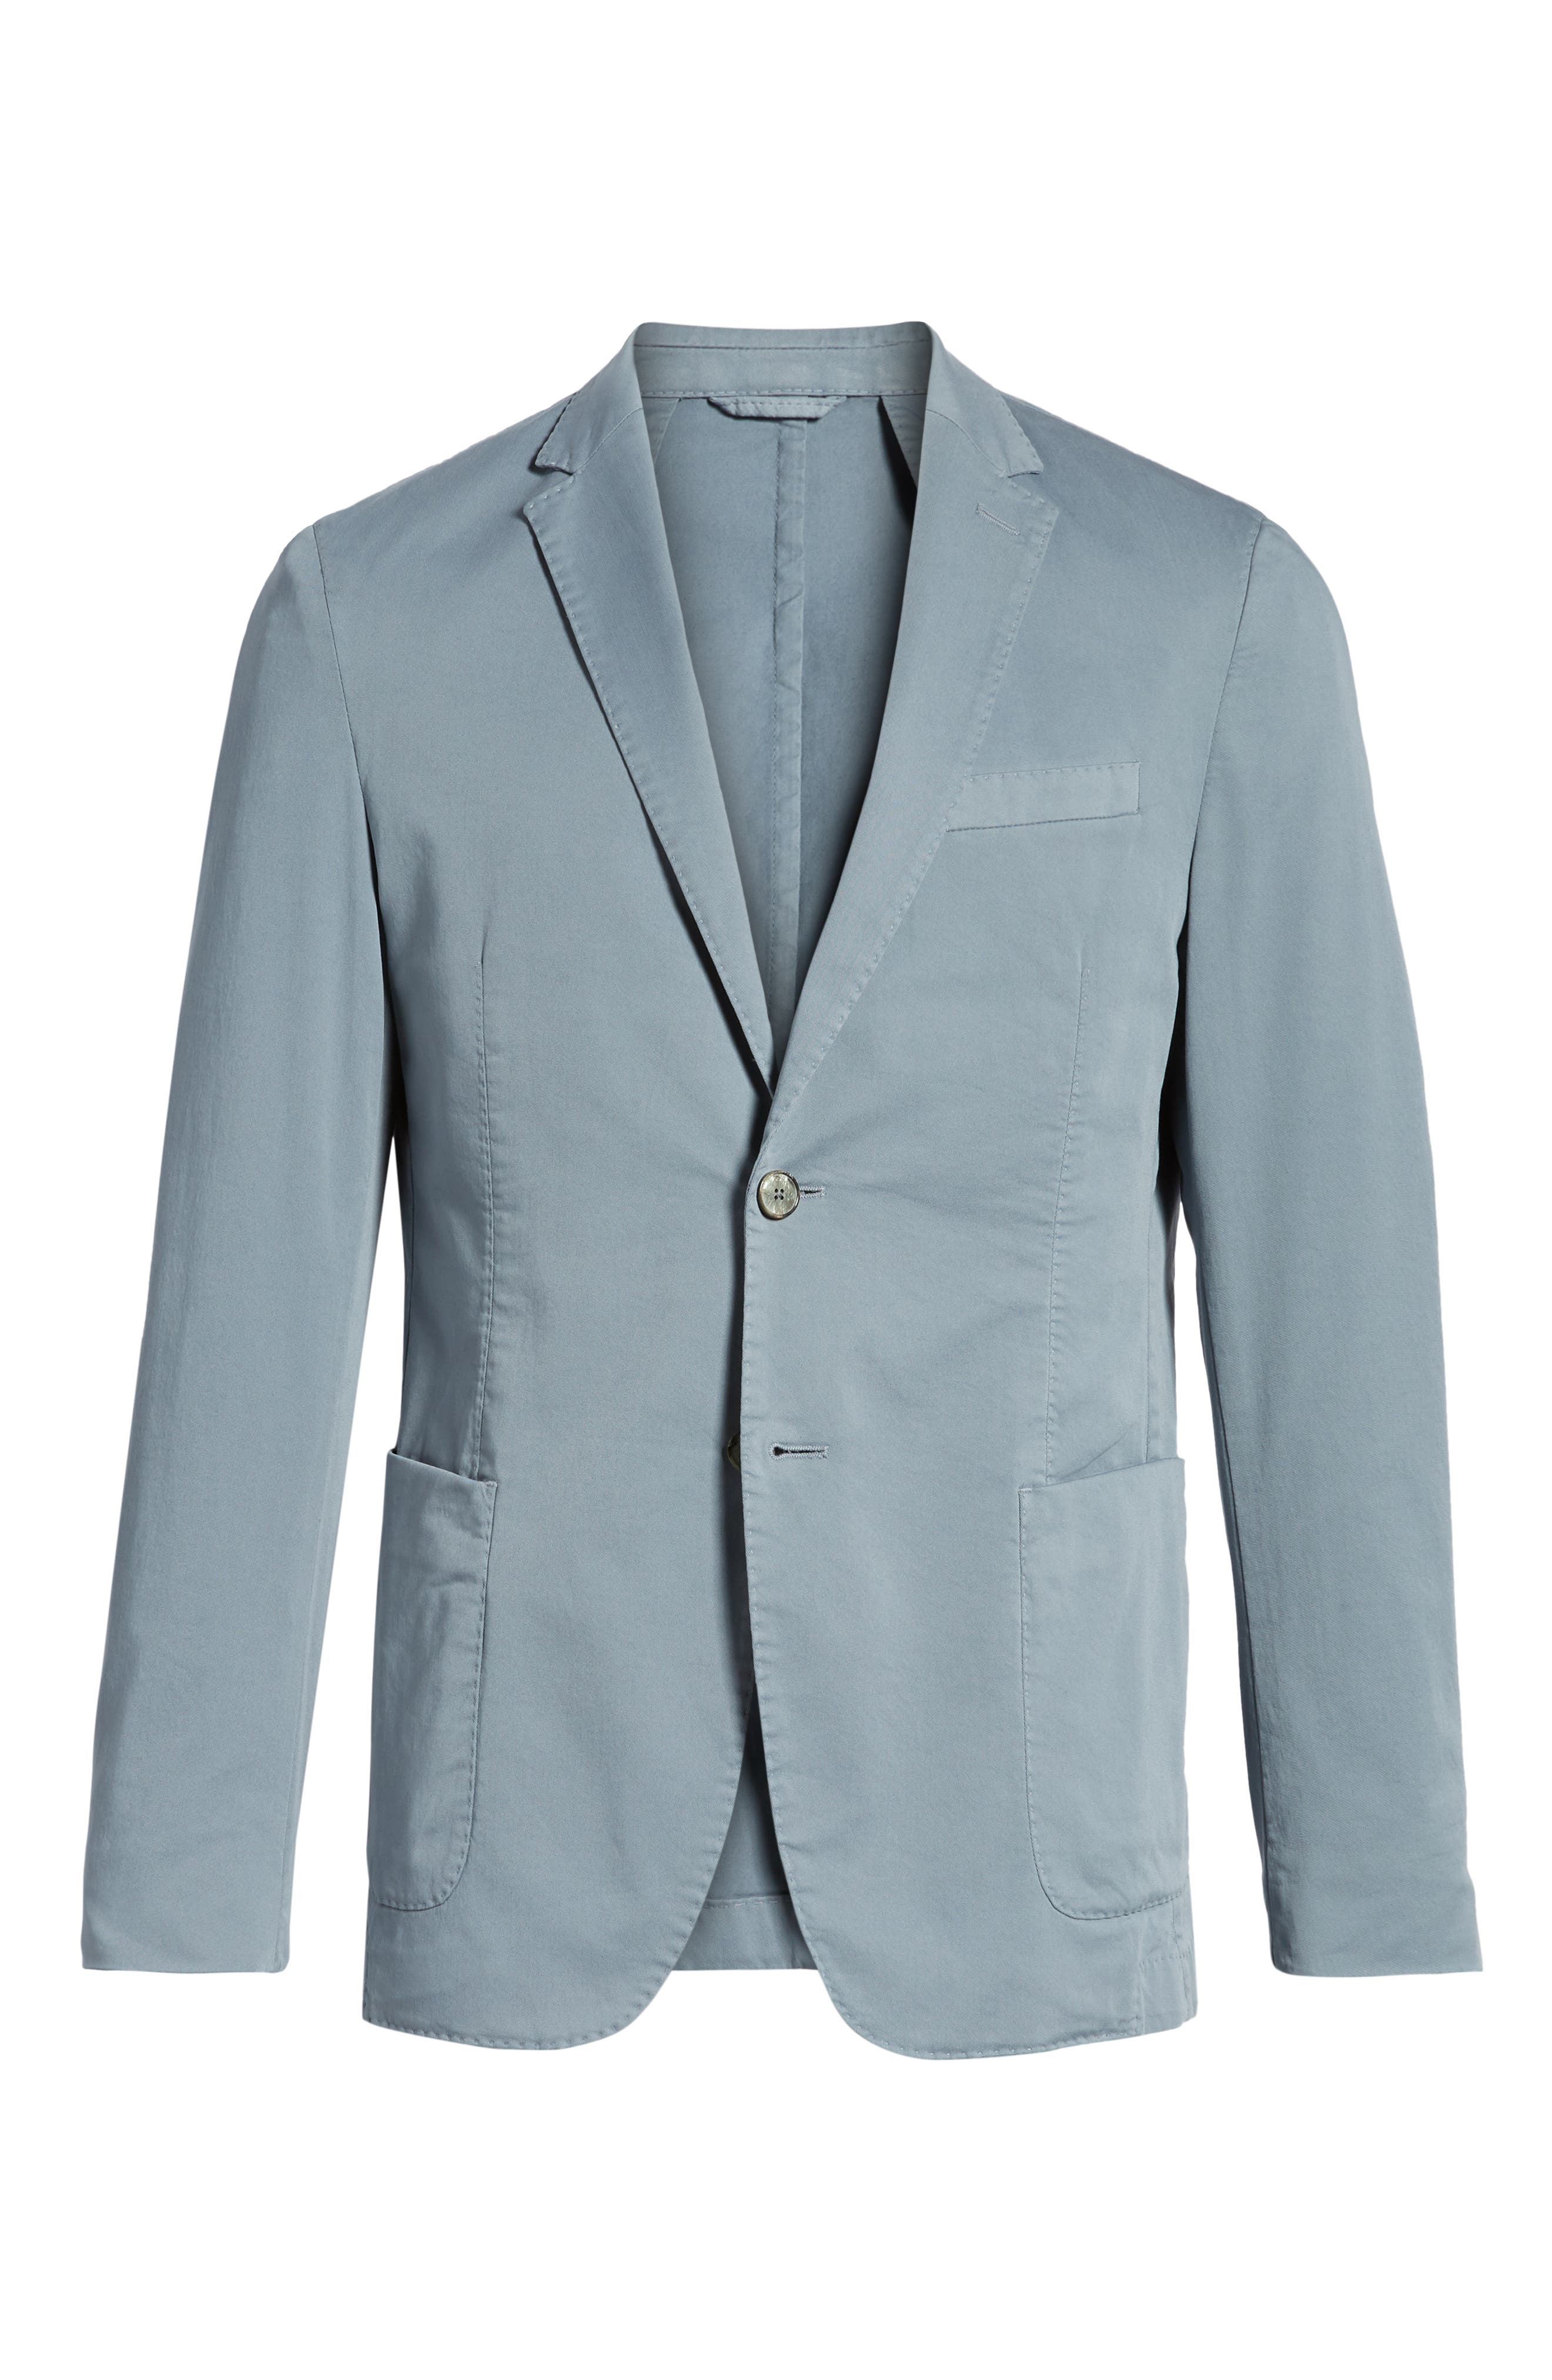 Hanry-D Trim Fit Stretch Cotton Blazer,                             Alternate thumbnail 6, color,                             Blue